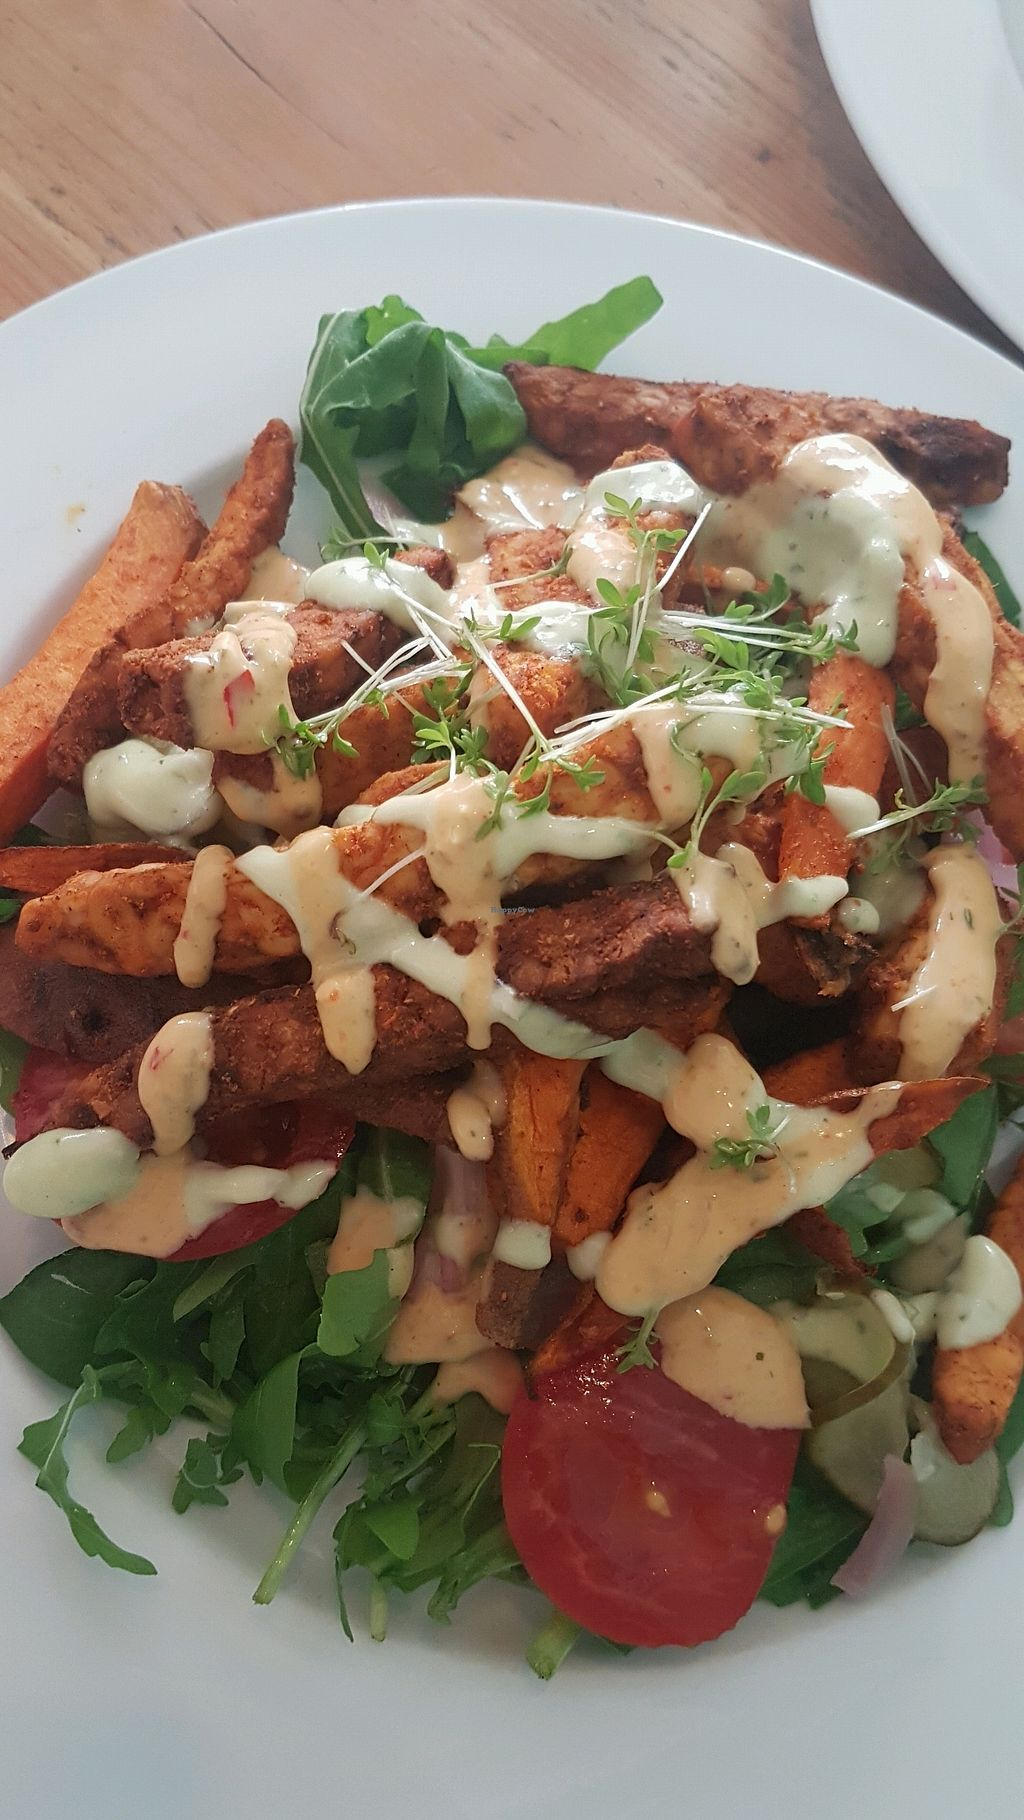 """Photo of GYS  by <a href=""""/members/profile/VeganCrush"""">VeganCrush</a> <br/>fried tempeh and sweet potato on salad <br/> September 26, 2017  - <a href='/contact/abuse/image/53767/308613'>Report</a>"""